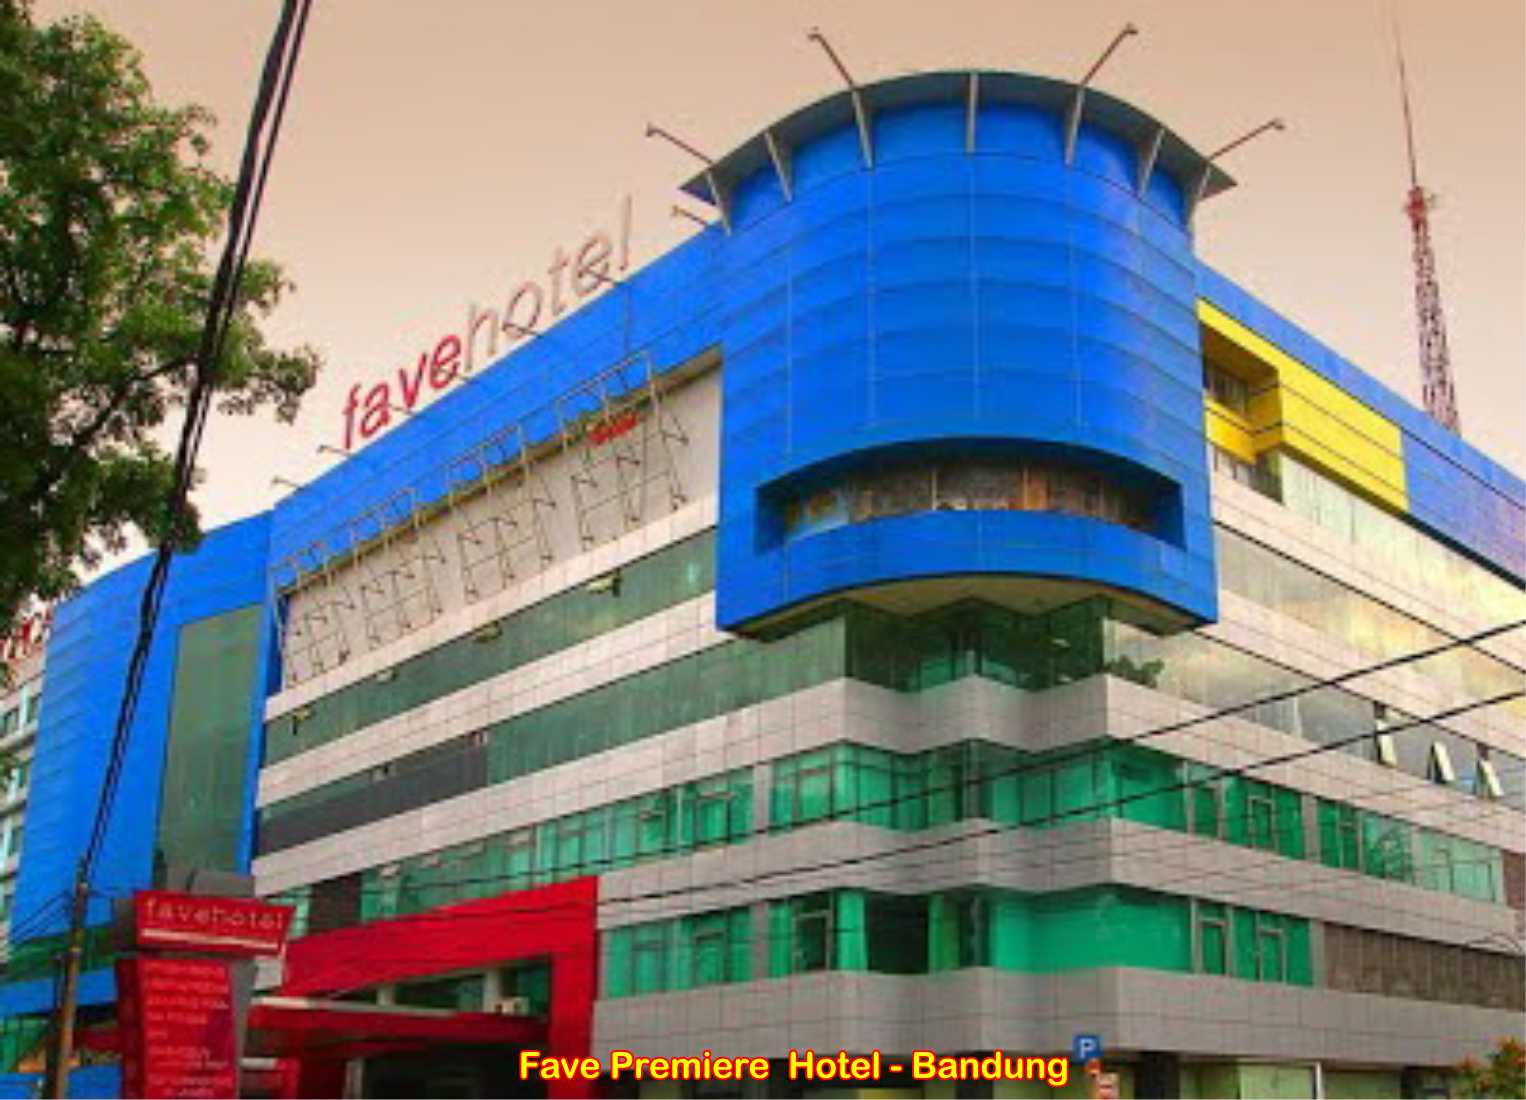 Fave Premiere Hotel, Bandung - Indonesia 1